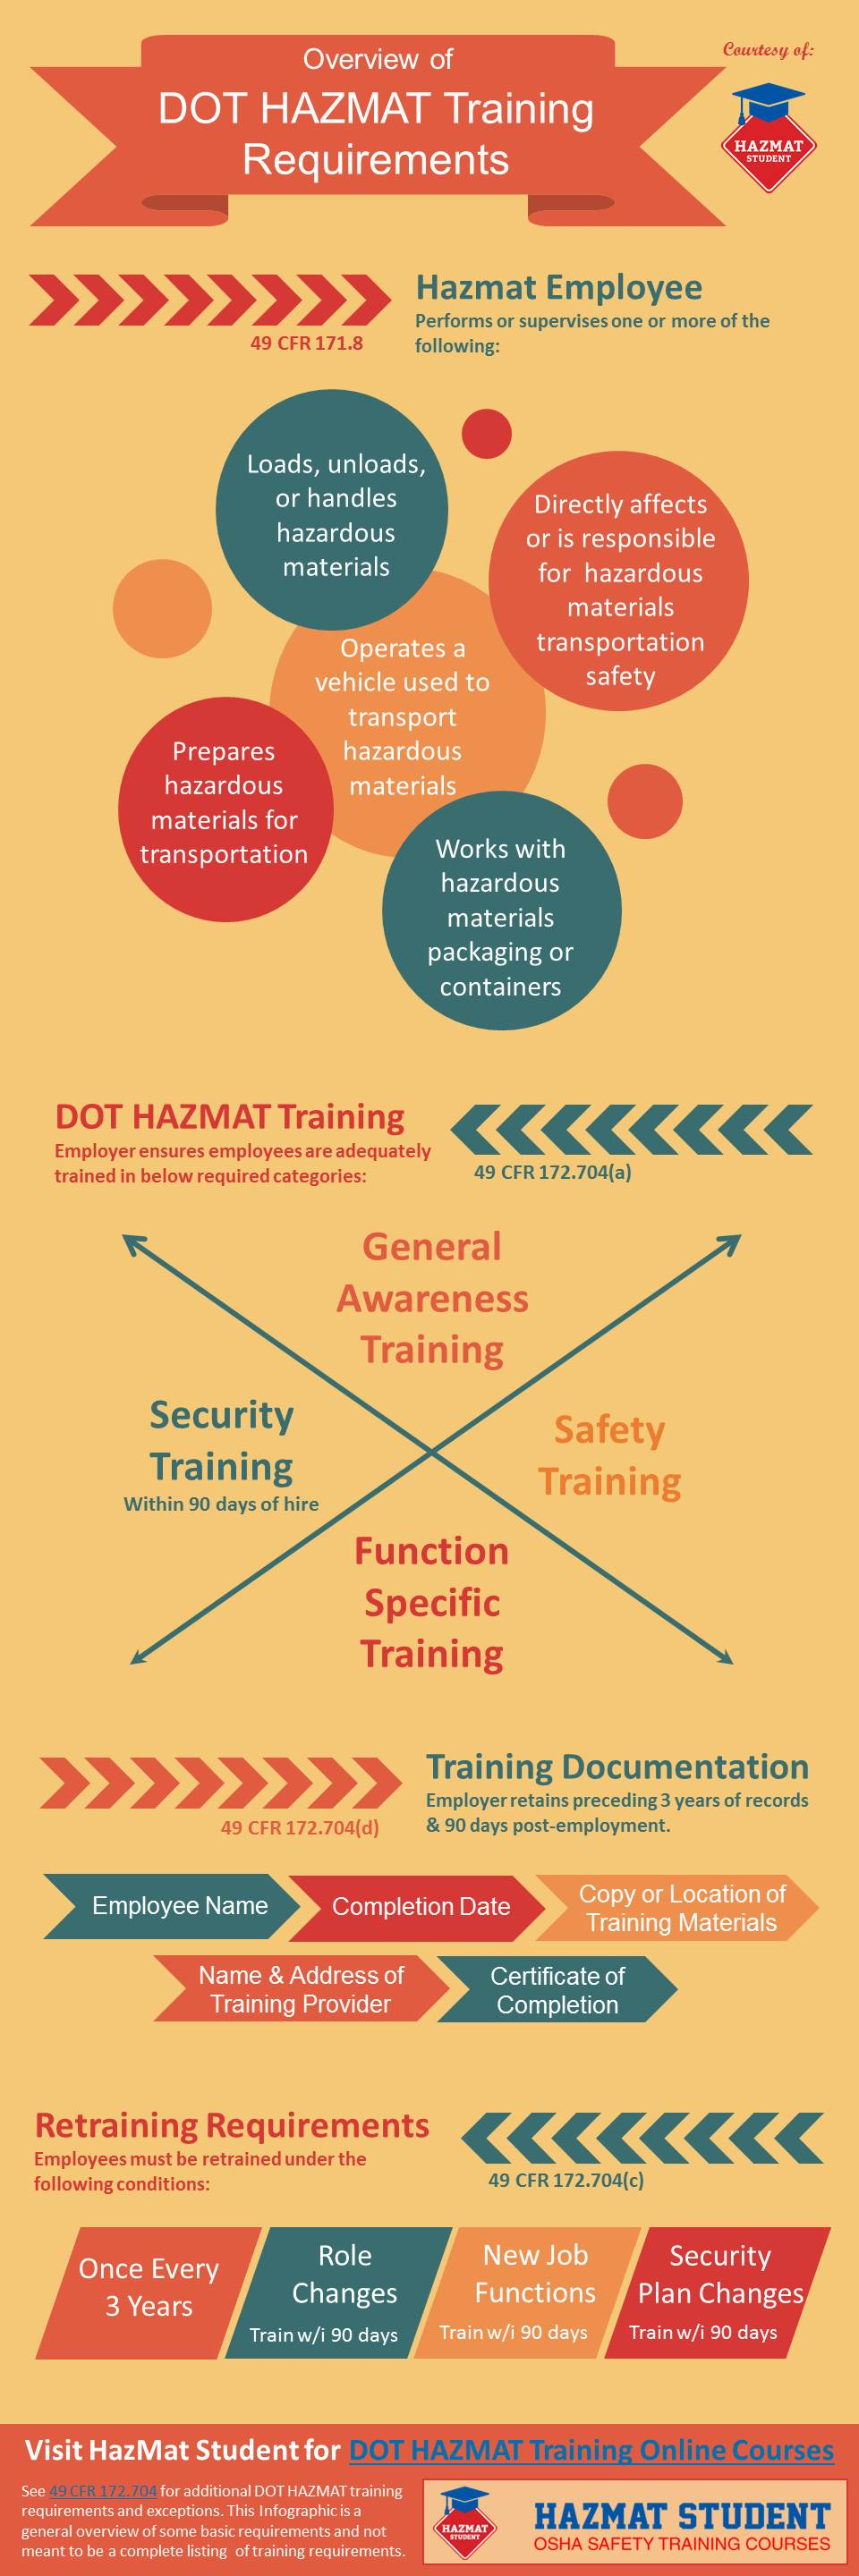 dot hazmat training requirements infographic